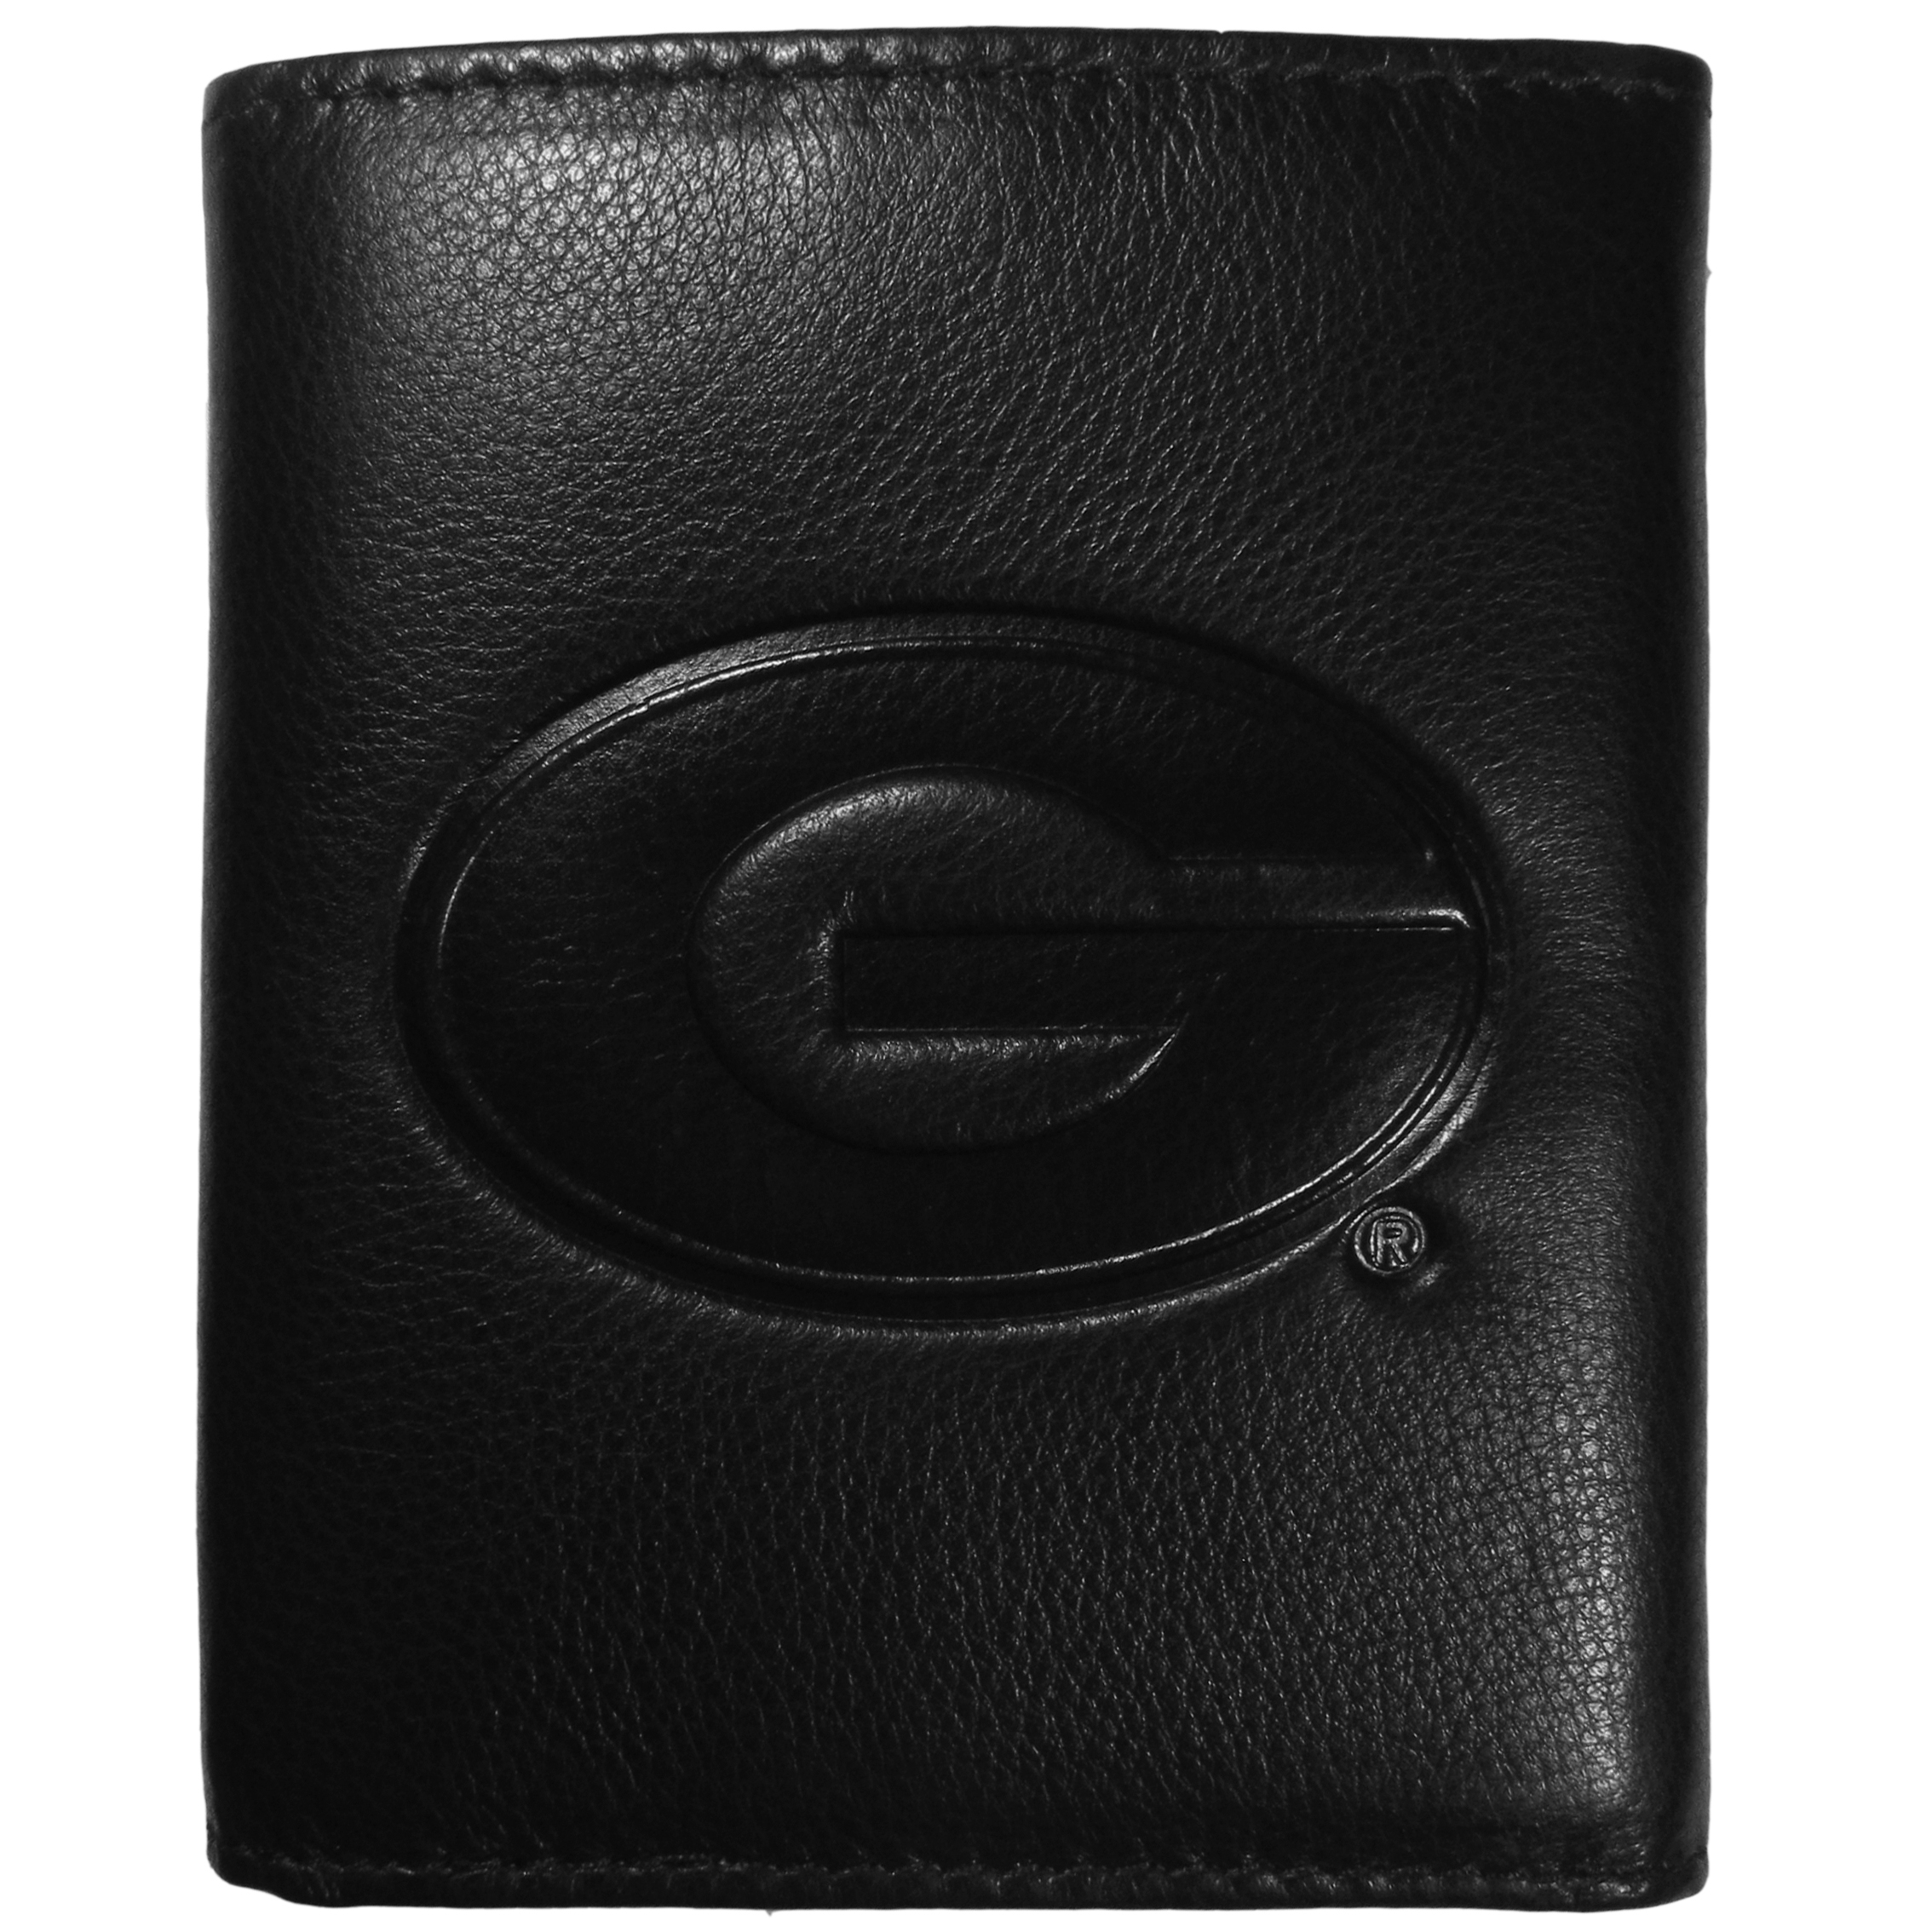 Georgia Bulldogs Embossed Leather Tri-fold Wallet - This stylish leather wallet is made of high quality leather with a supple feel and classic look. The front of the tri-fold style wallet has a deeply embossed Georgia Bulldogs logo. The billfold is packed with features that will allow to keep organized, lots of credit card slots, windowed ID slot, large pockets for bills and a removable sleeve with extra slots for even more storage. This is a must-have men's fashion accessory that would make any fan very proud to own.